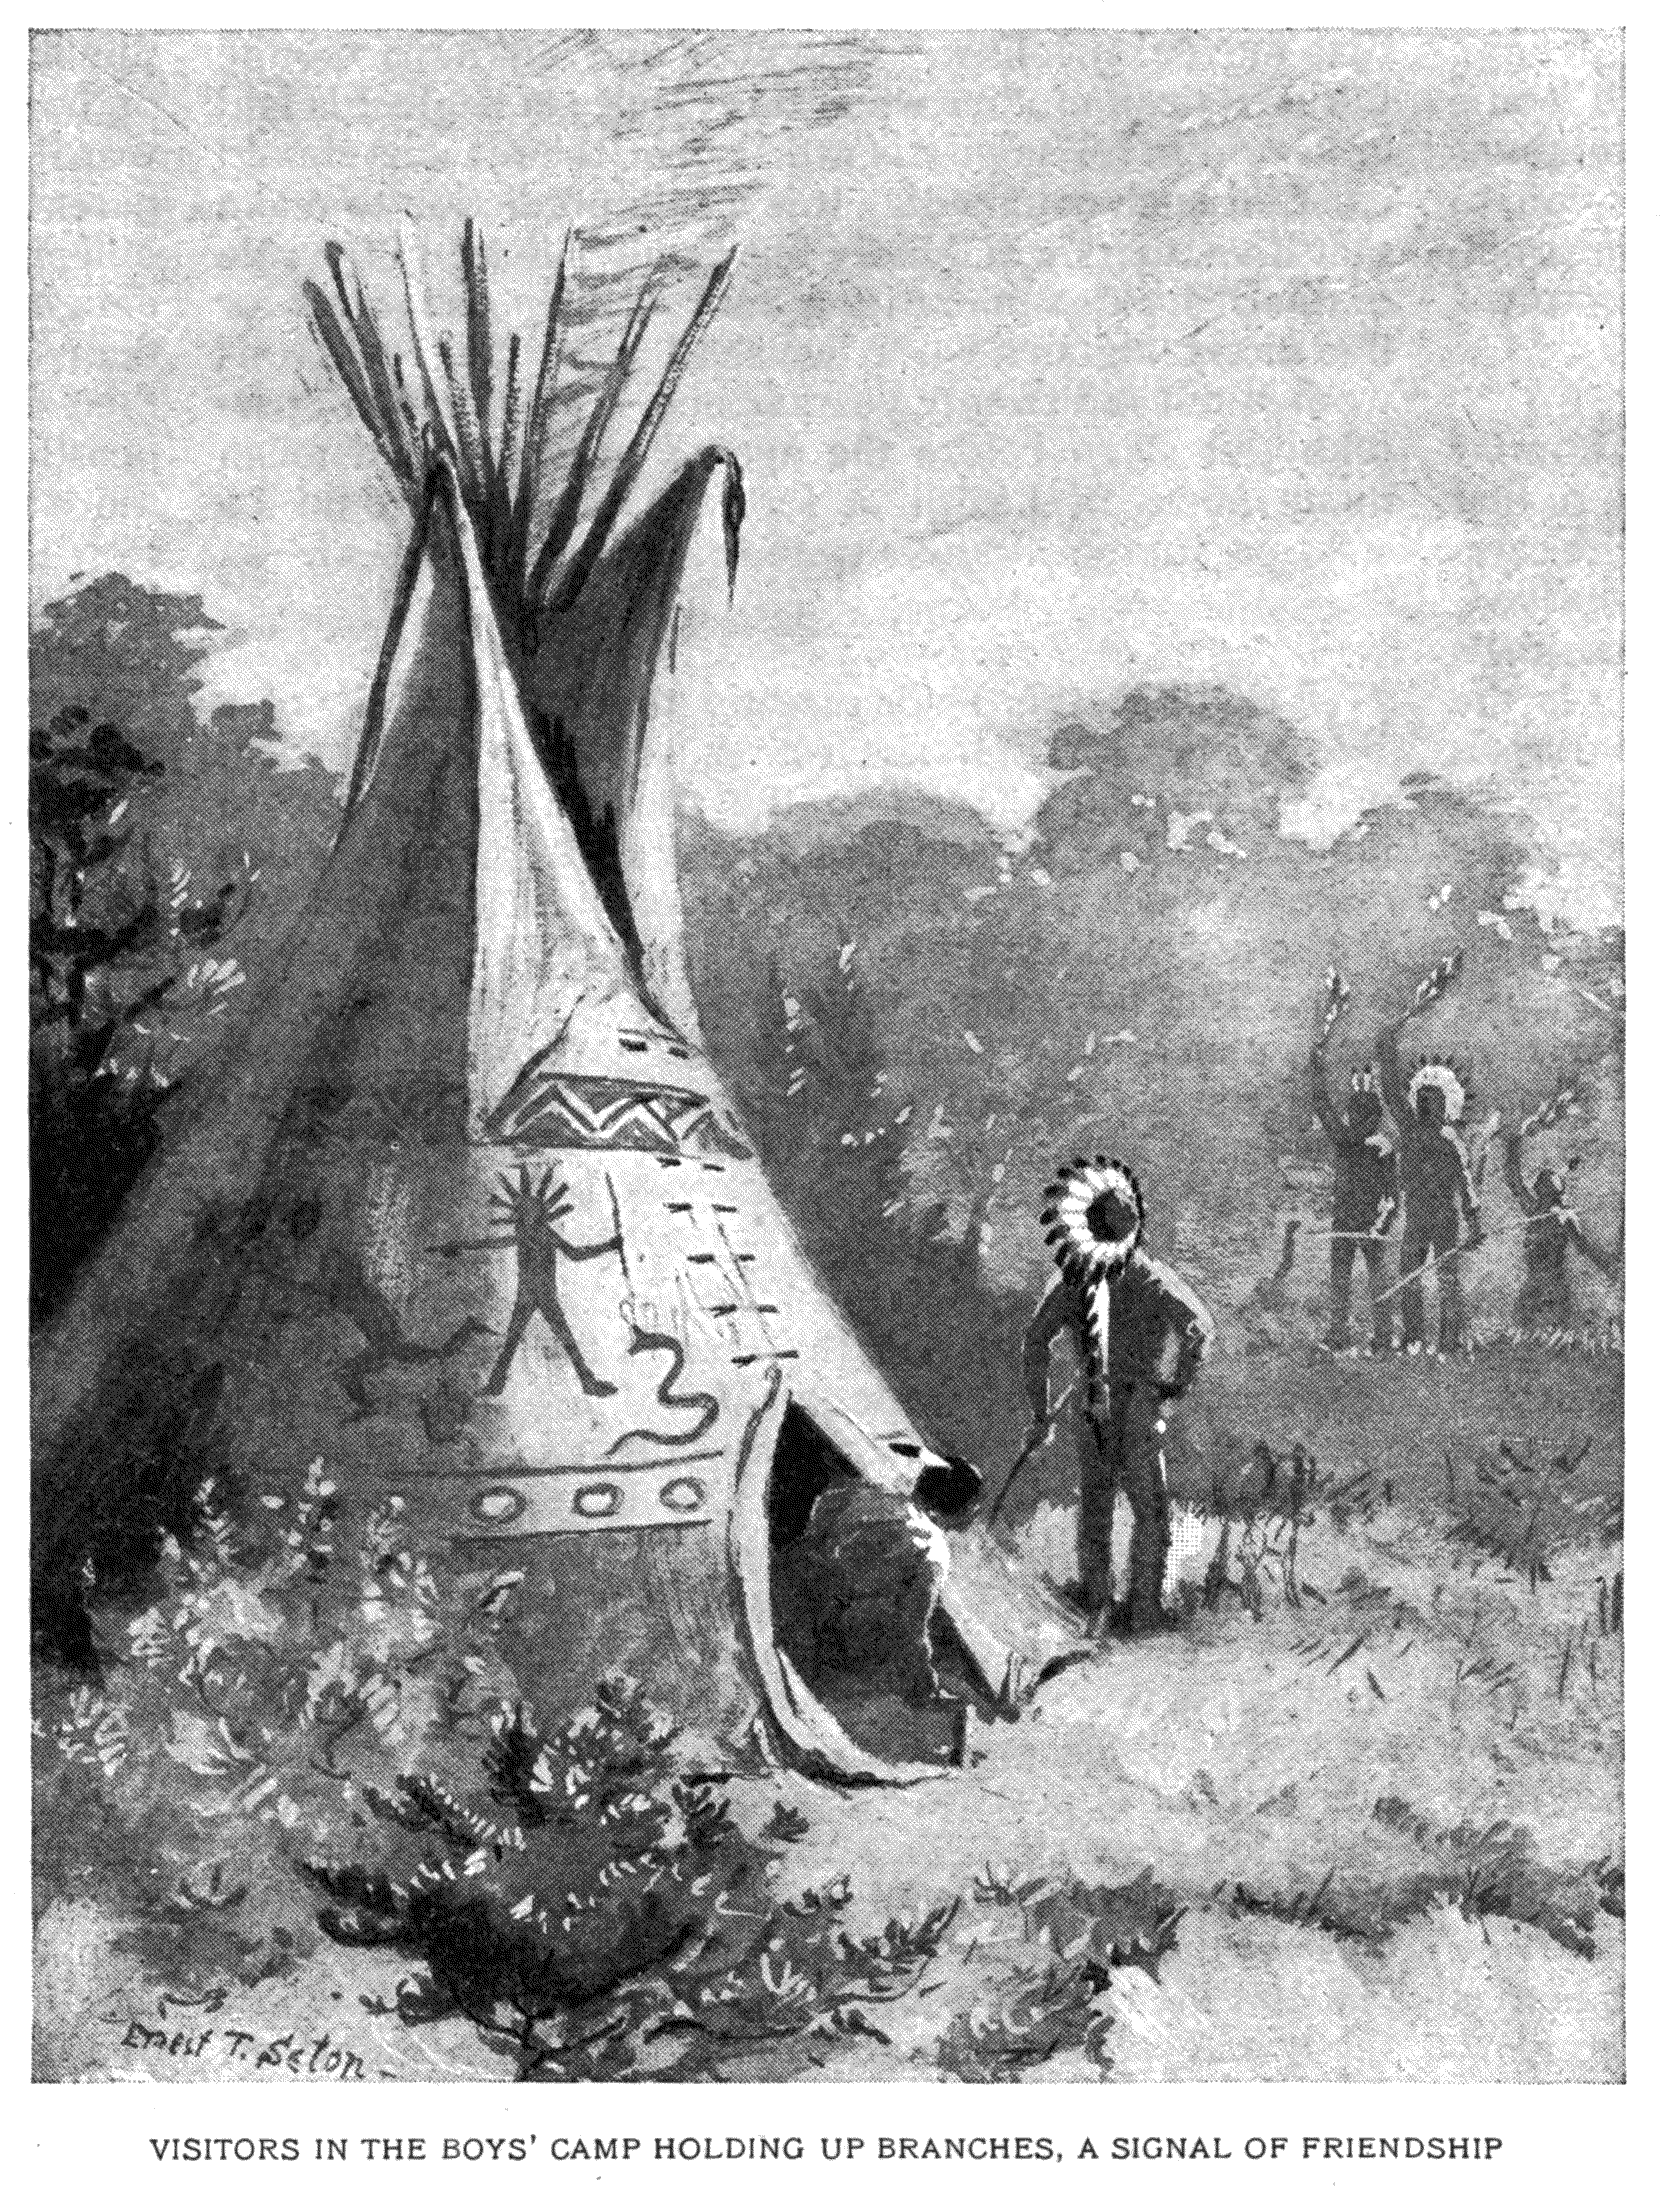 VISITORS IN THE BOY'S CAMP HOLDING UP BRANCHES, A SIGNAL OF FRIENDSHIP